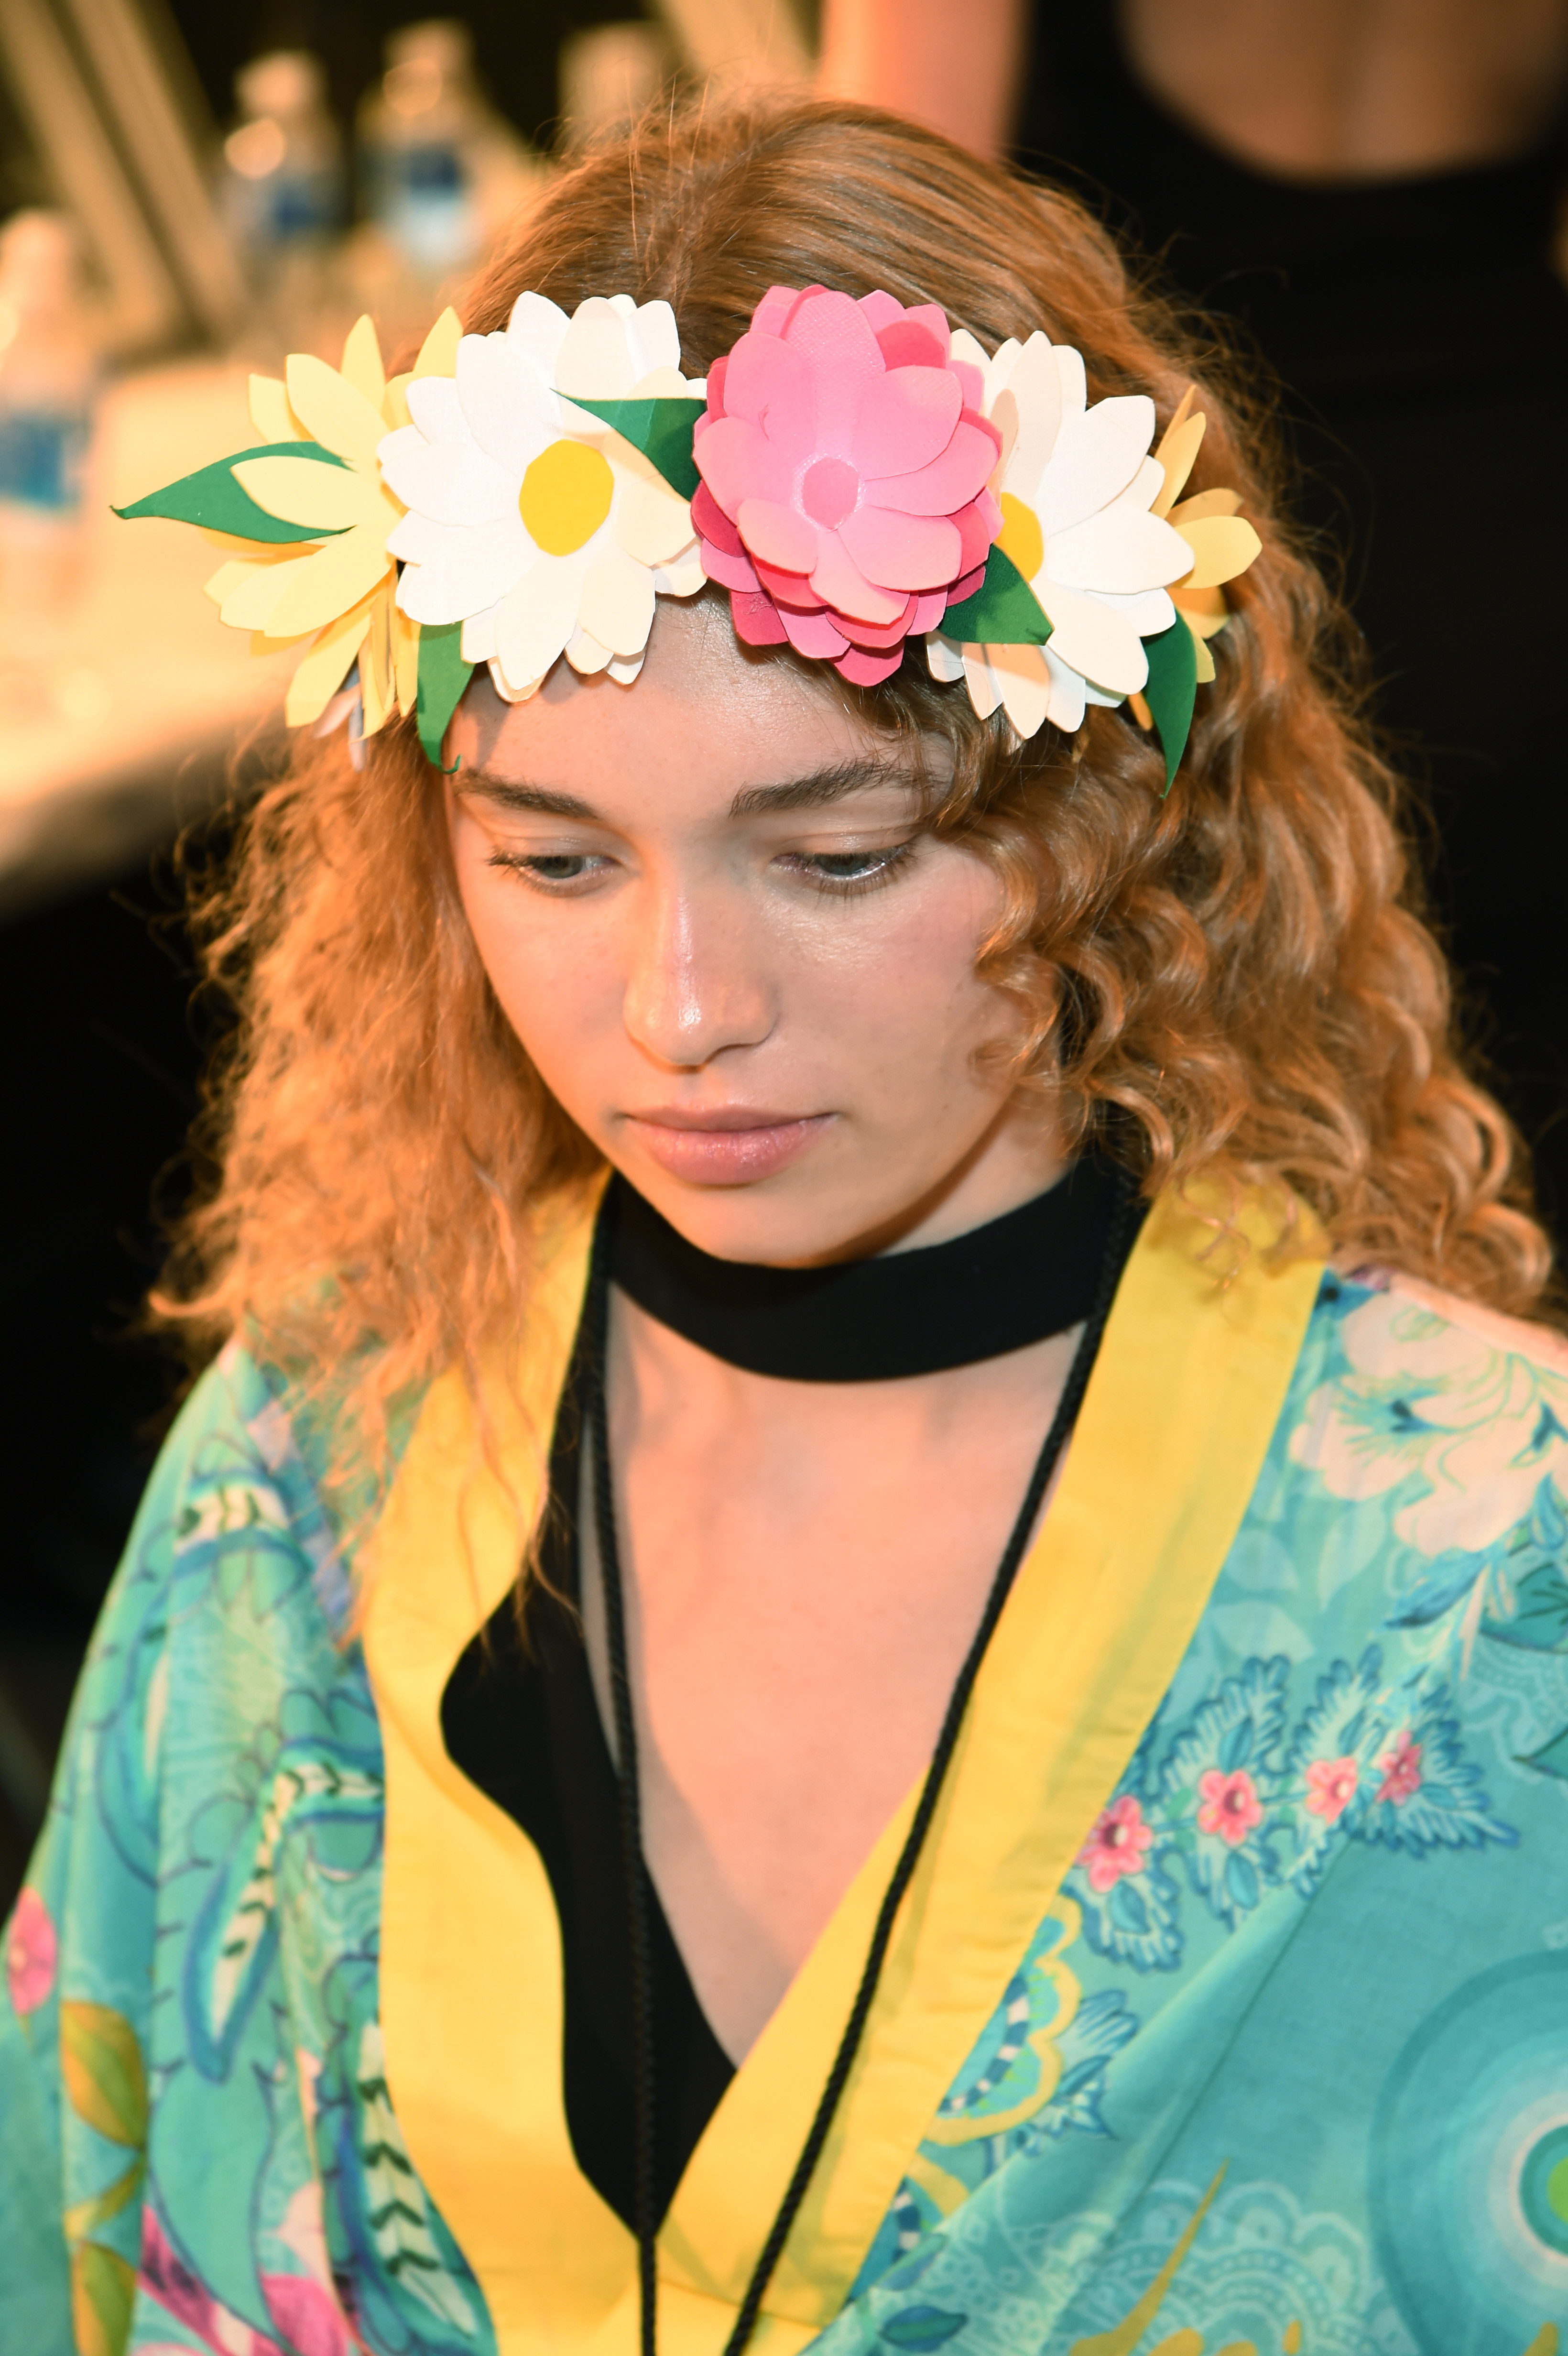 NEW YORK, NY - SEPTEMBER 08:  A model has their hair done backstage at the Desigual fashion show during New York Fashion Week: The Shows September 2016 at The Arc, Skylight at Moynihan Station on September 8, 2016 in New York City.  (Photo by Larry Busacca/Getty Images for New York Fashion Week: The Shows)